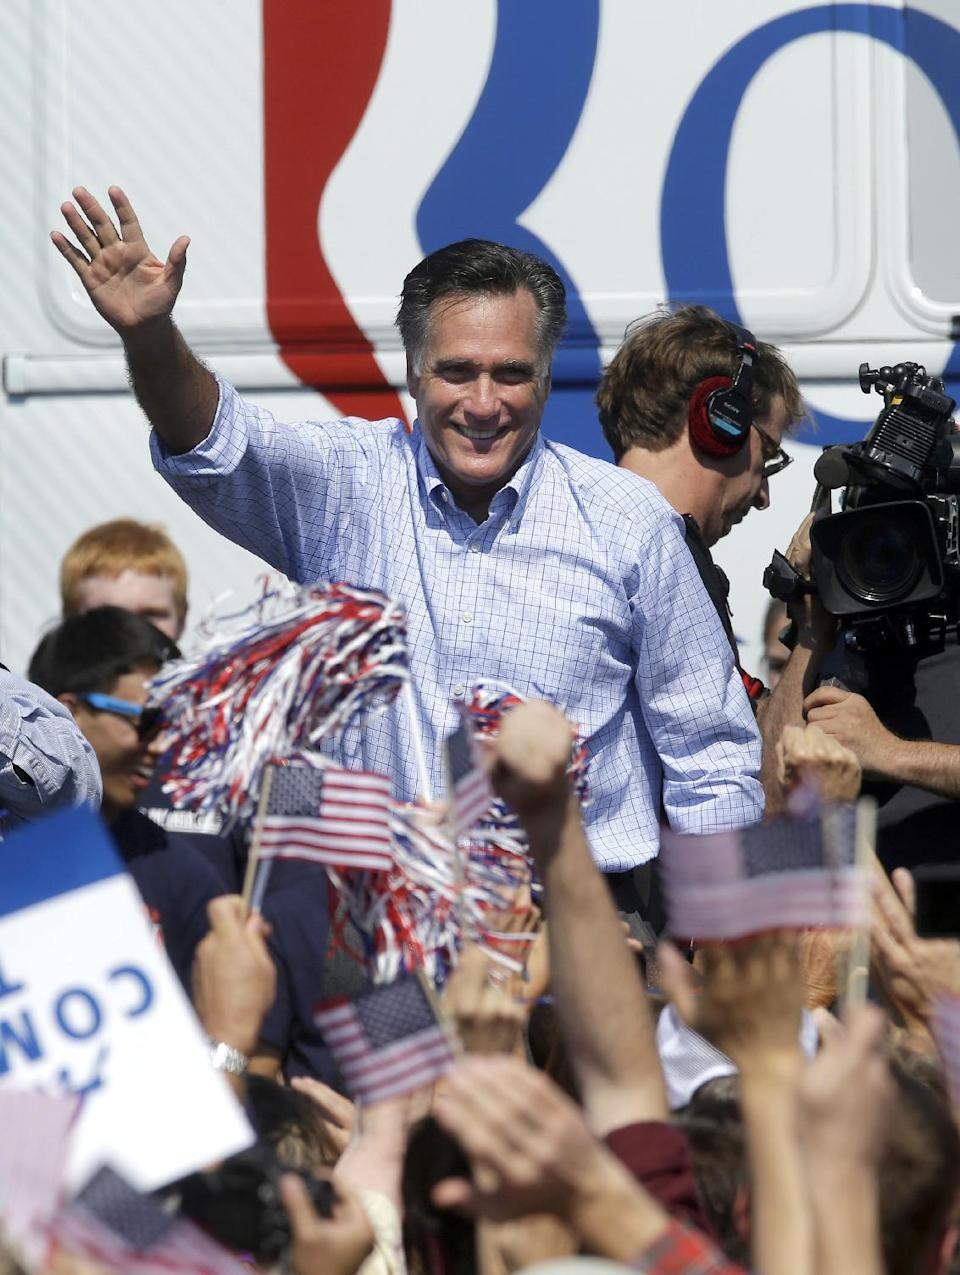 Republican presidential candidate, former Massachusetts Gov. Mitt Romney waves to supporters during a campaign event at Van Dyck Park, Thursday, Sept. 13, 2012, in Fairfax, Va. (AP Photo/Pablo Martinez Monsivais)